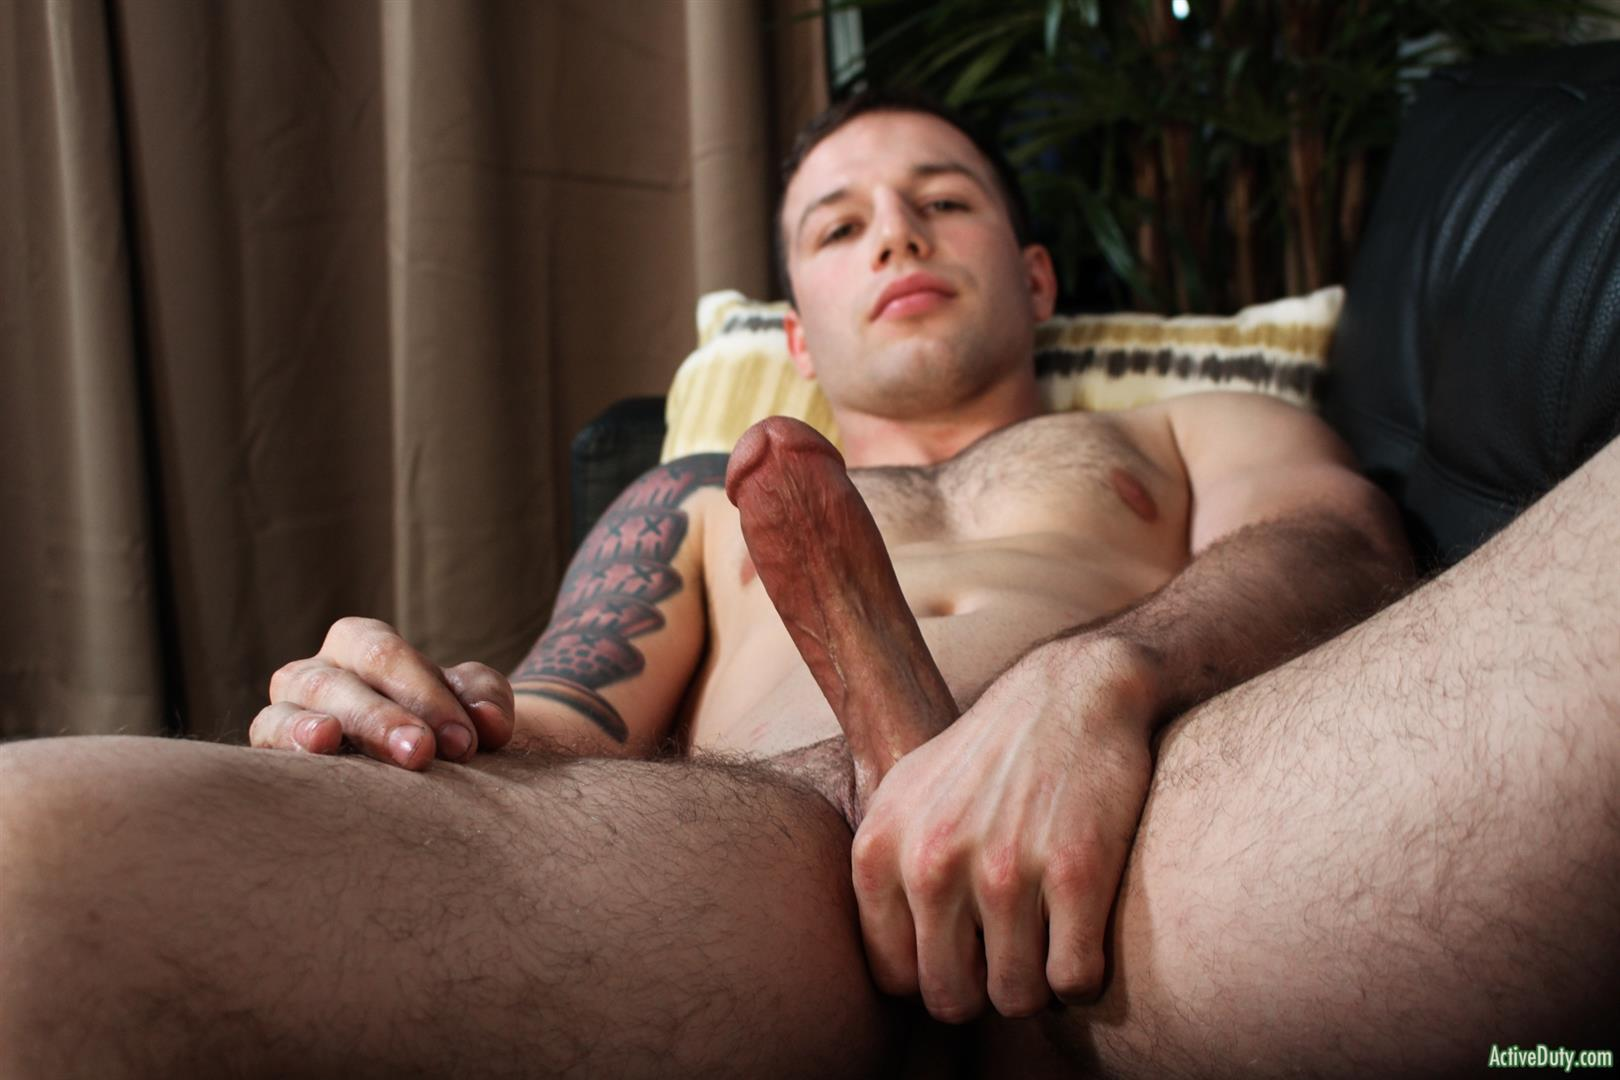 Active-Duty-Tim-Tank-Muscular-Marine-With-A-Thick-Cock-Jerk-Off-12 Muscular Straight Marine Jerking Off His Very Thick Dick